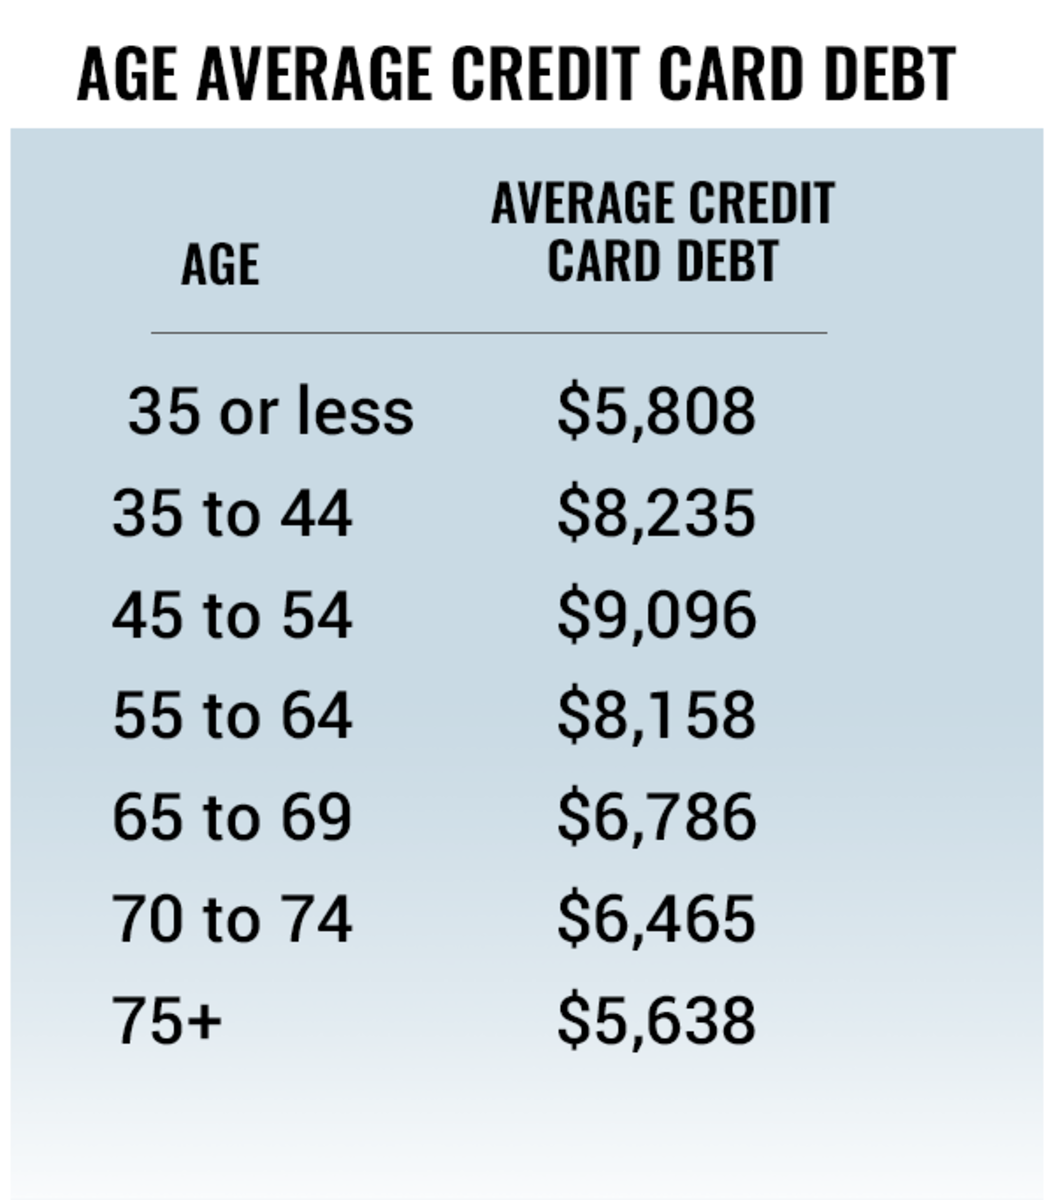 Average Credit Card Debt by Age